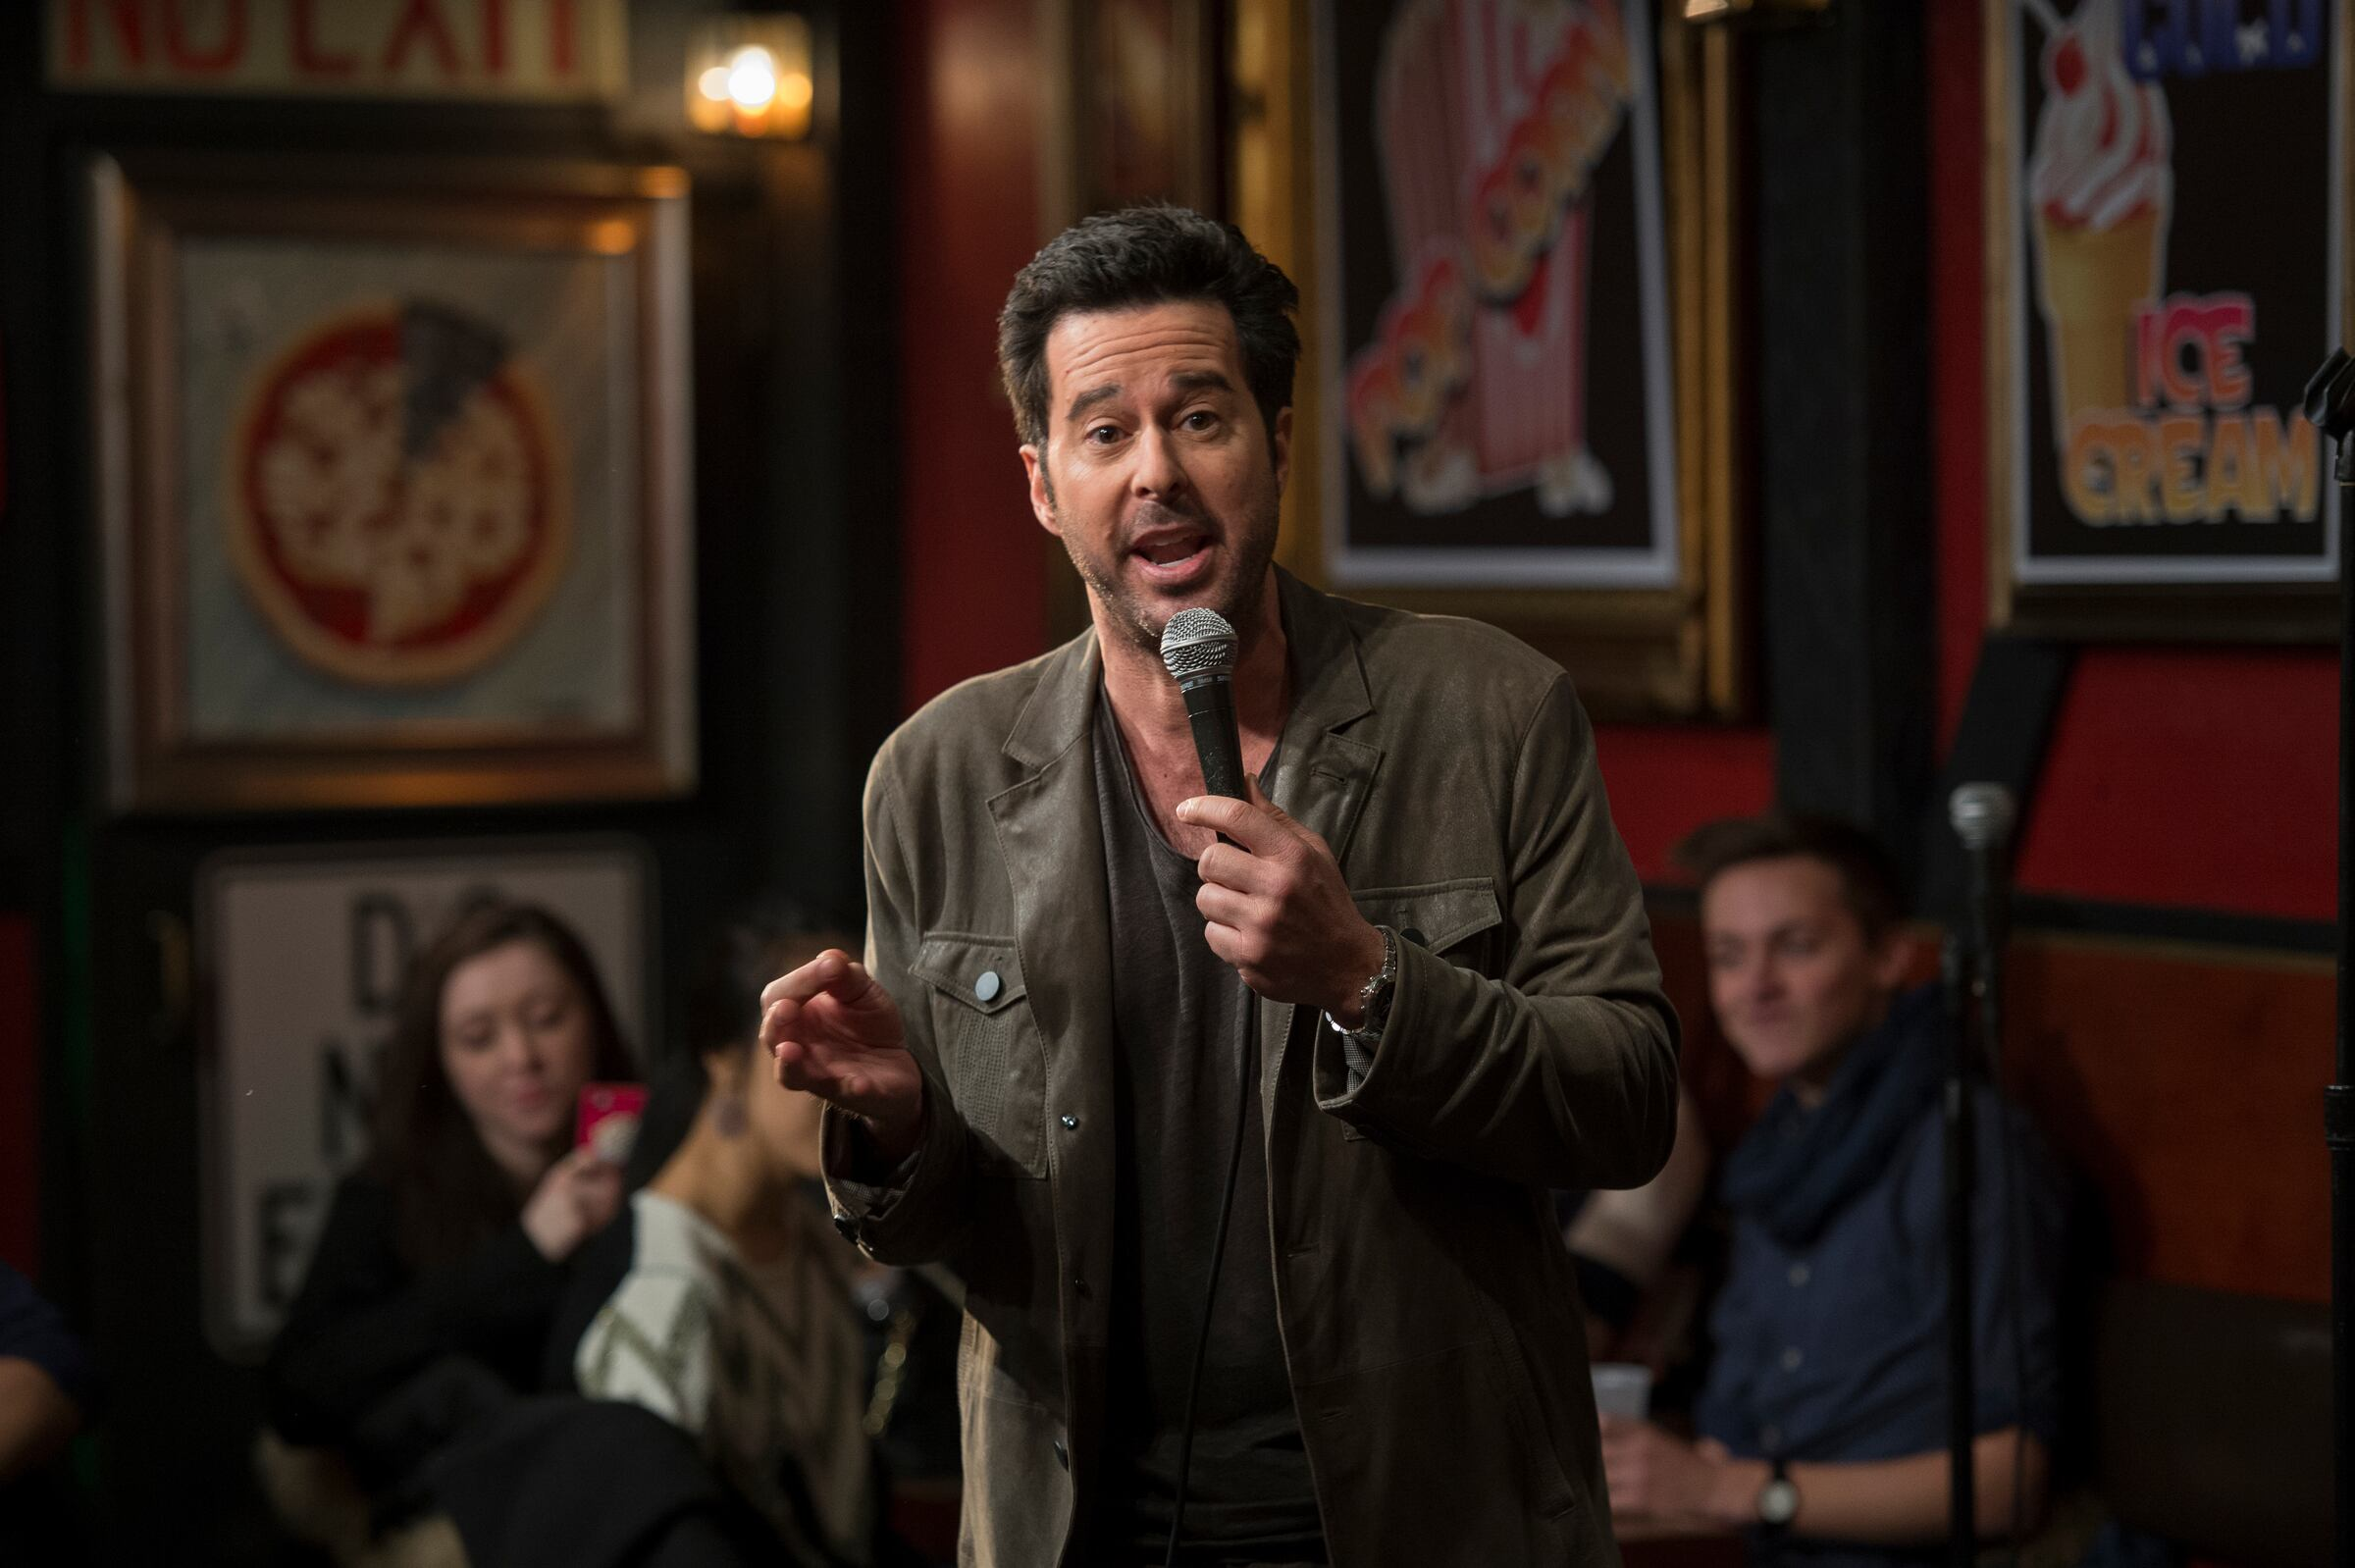 Jonathan Silverman plays crude standup comedian Josh Galloway who defends his act - and his actions - on trial when a fan accuses him of rape.